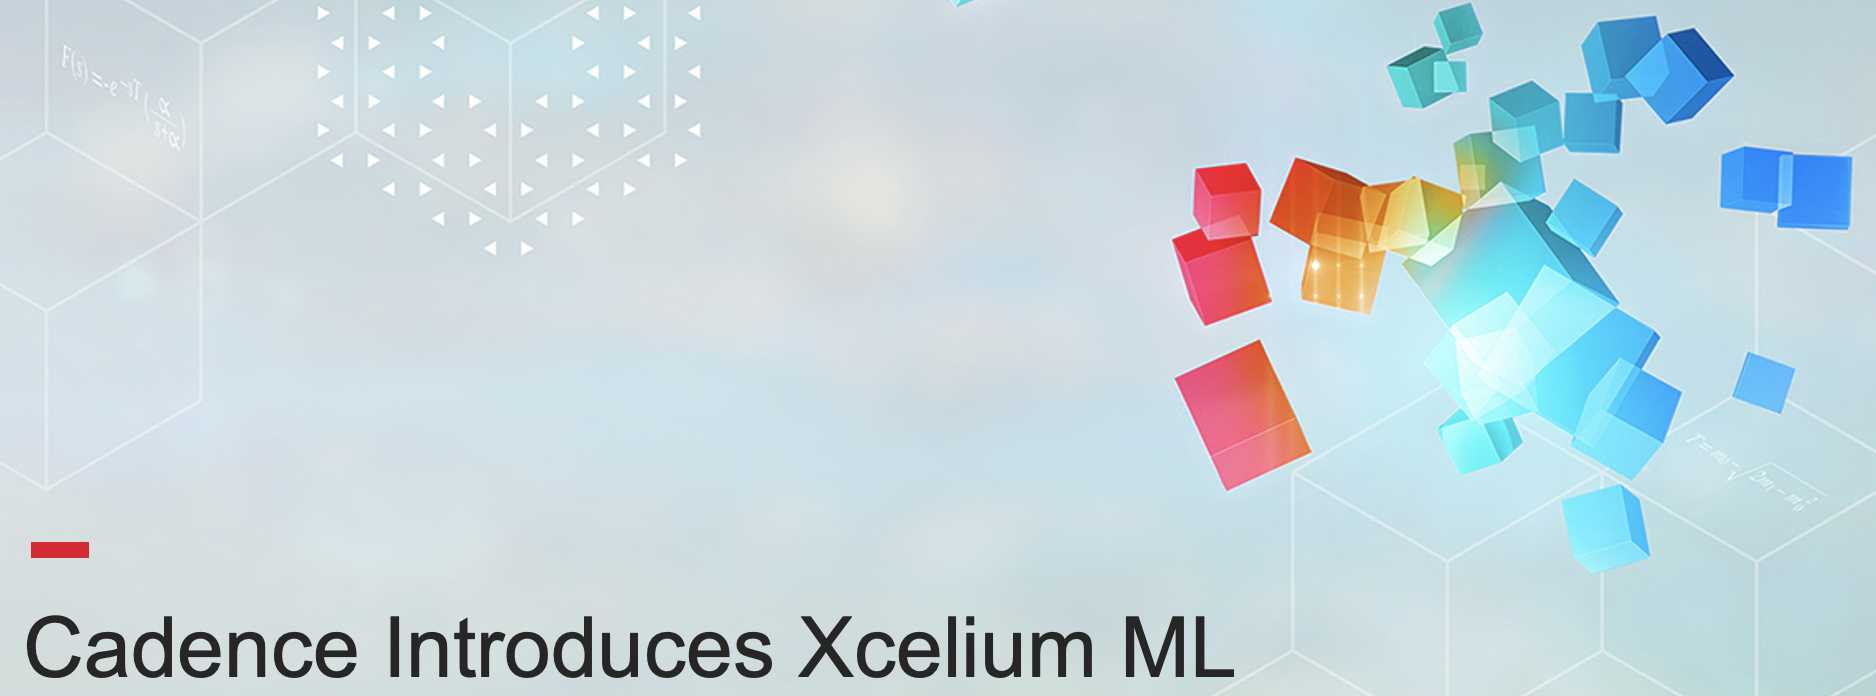 Cadence Increases Verification Efficiency up to 5X with Xcelium ML